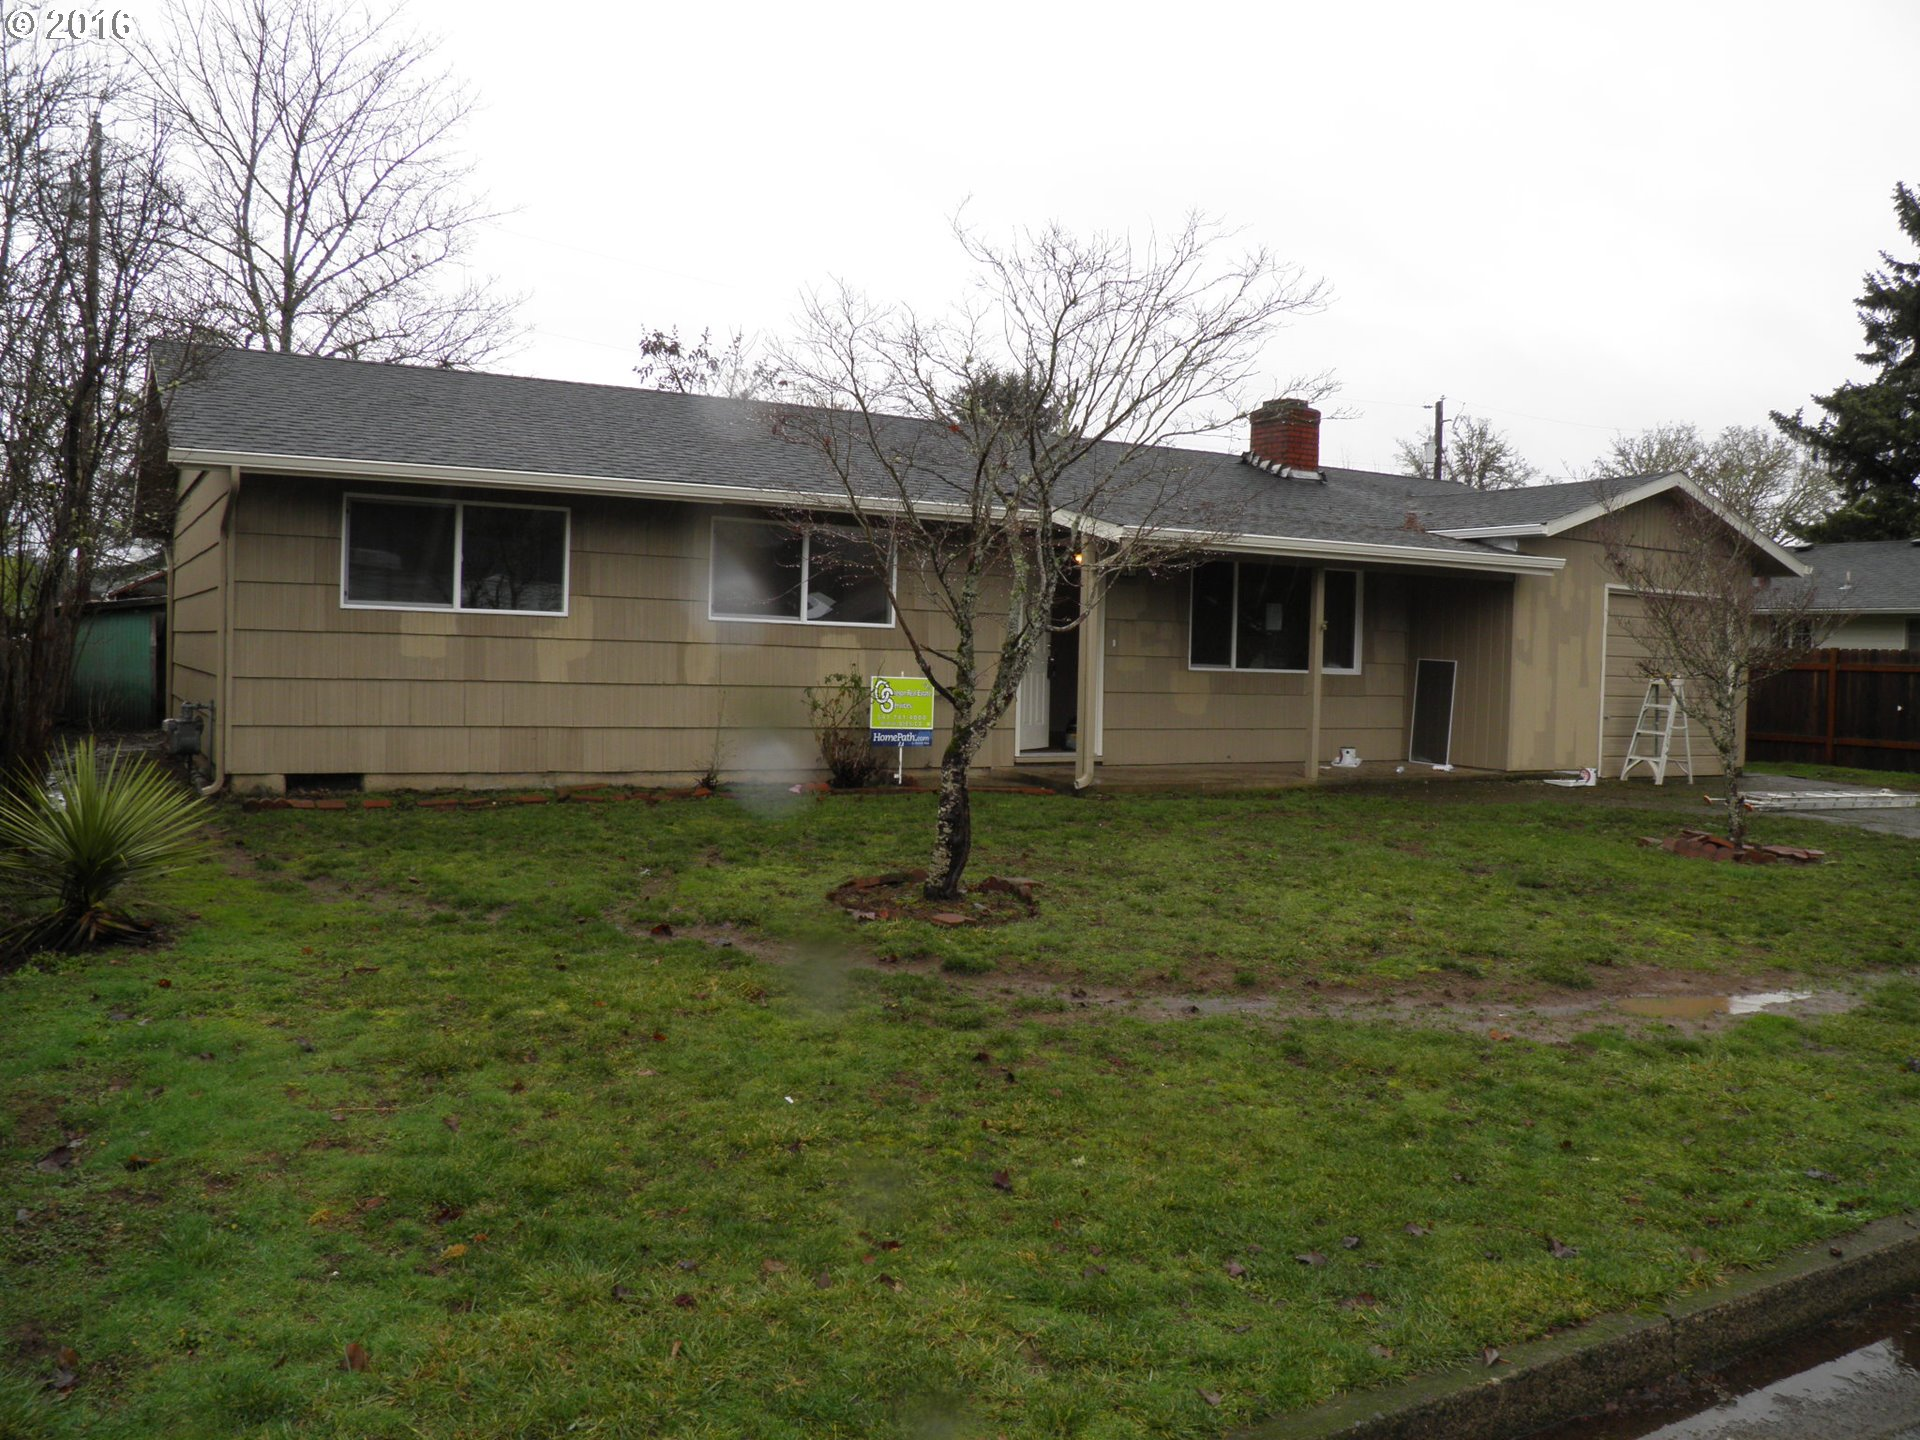 250 S P St, Cottage Grove, OR